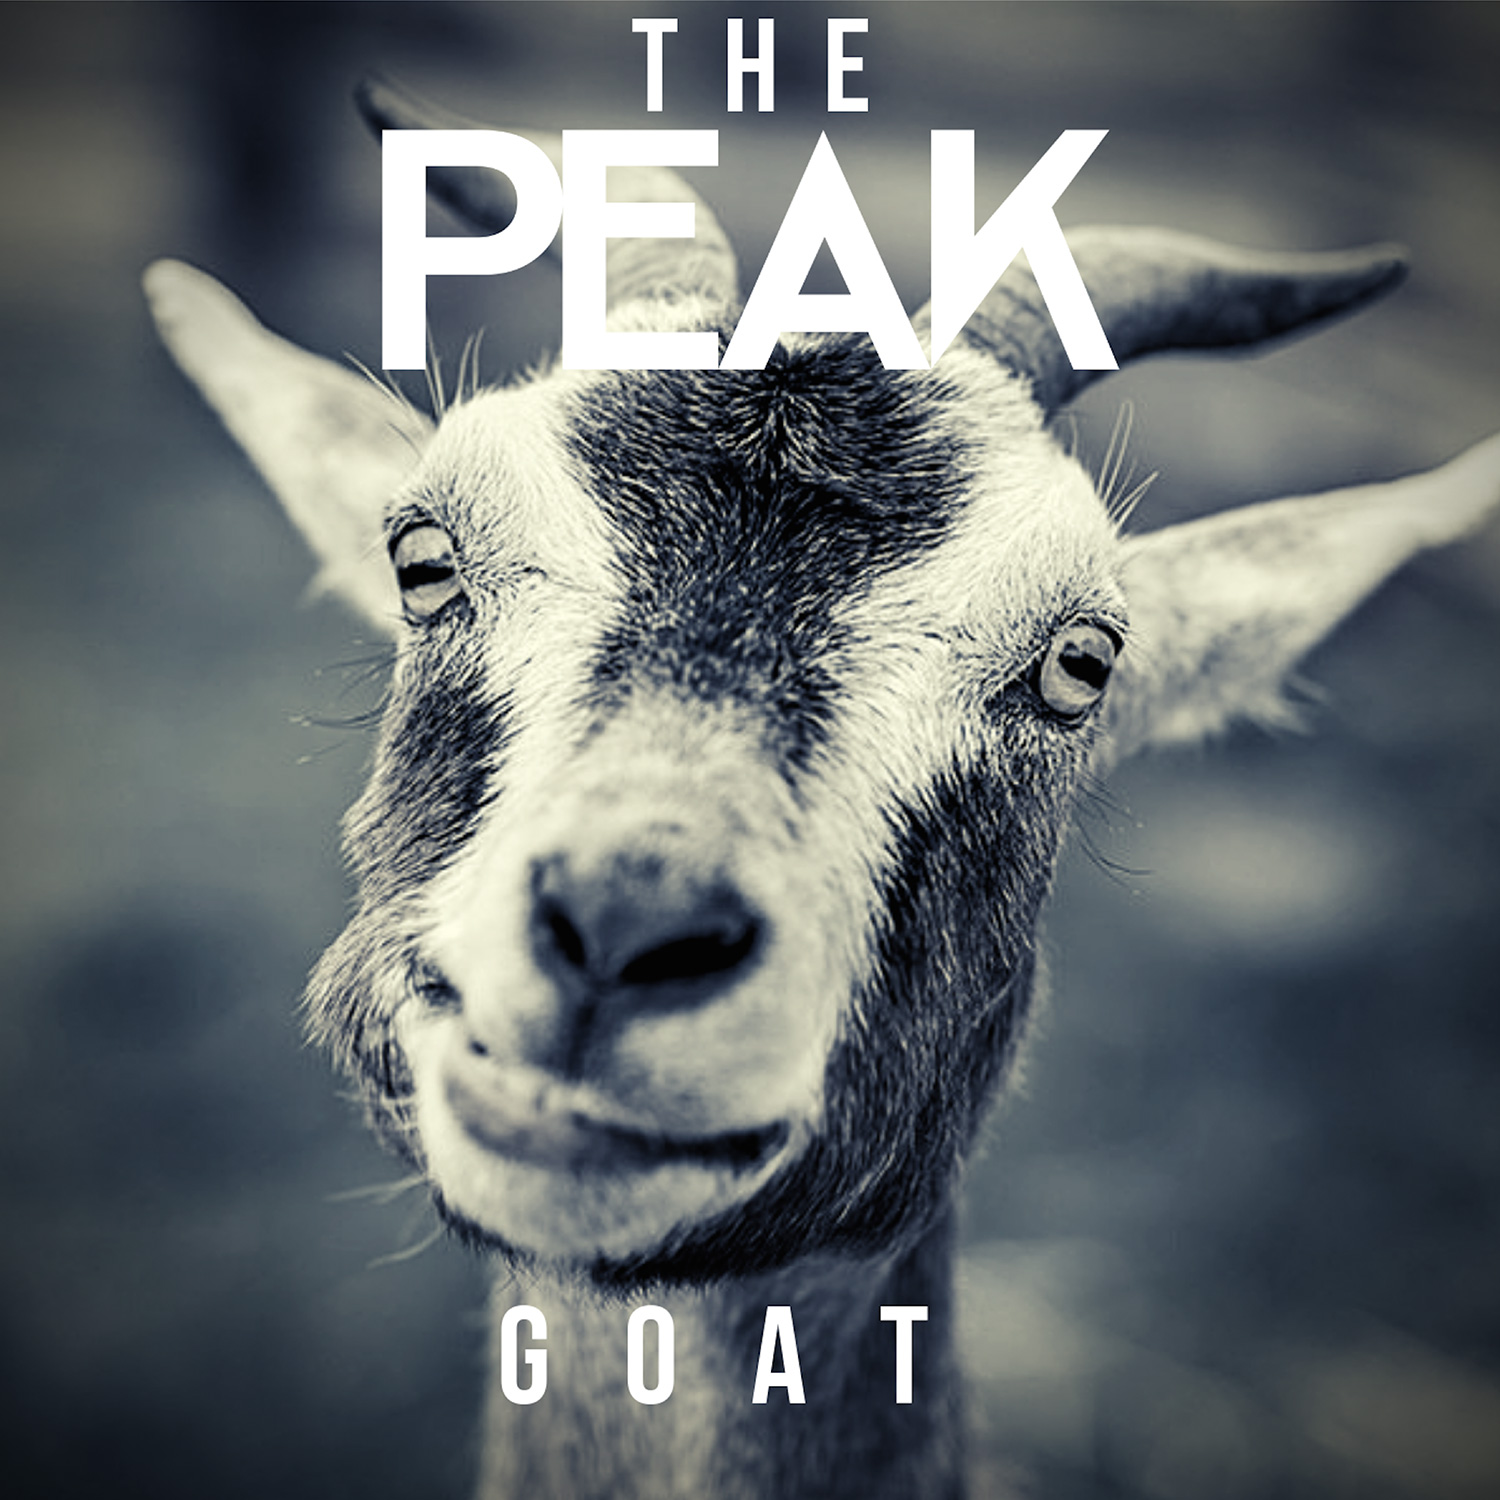 The Peak - Goat - 7C Recordings